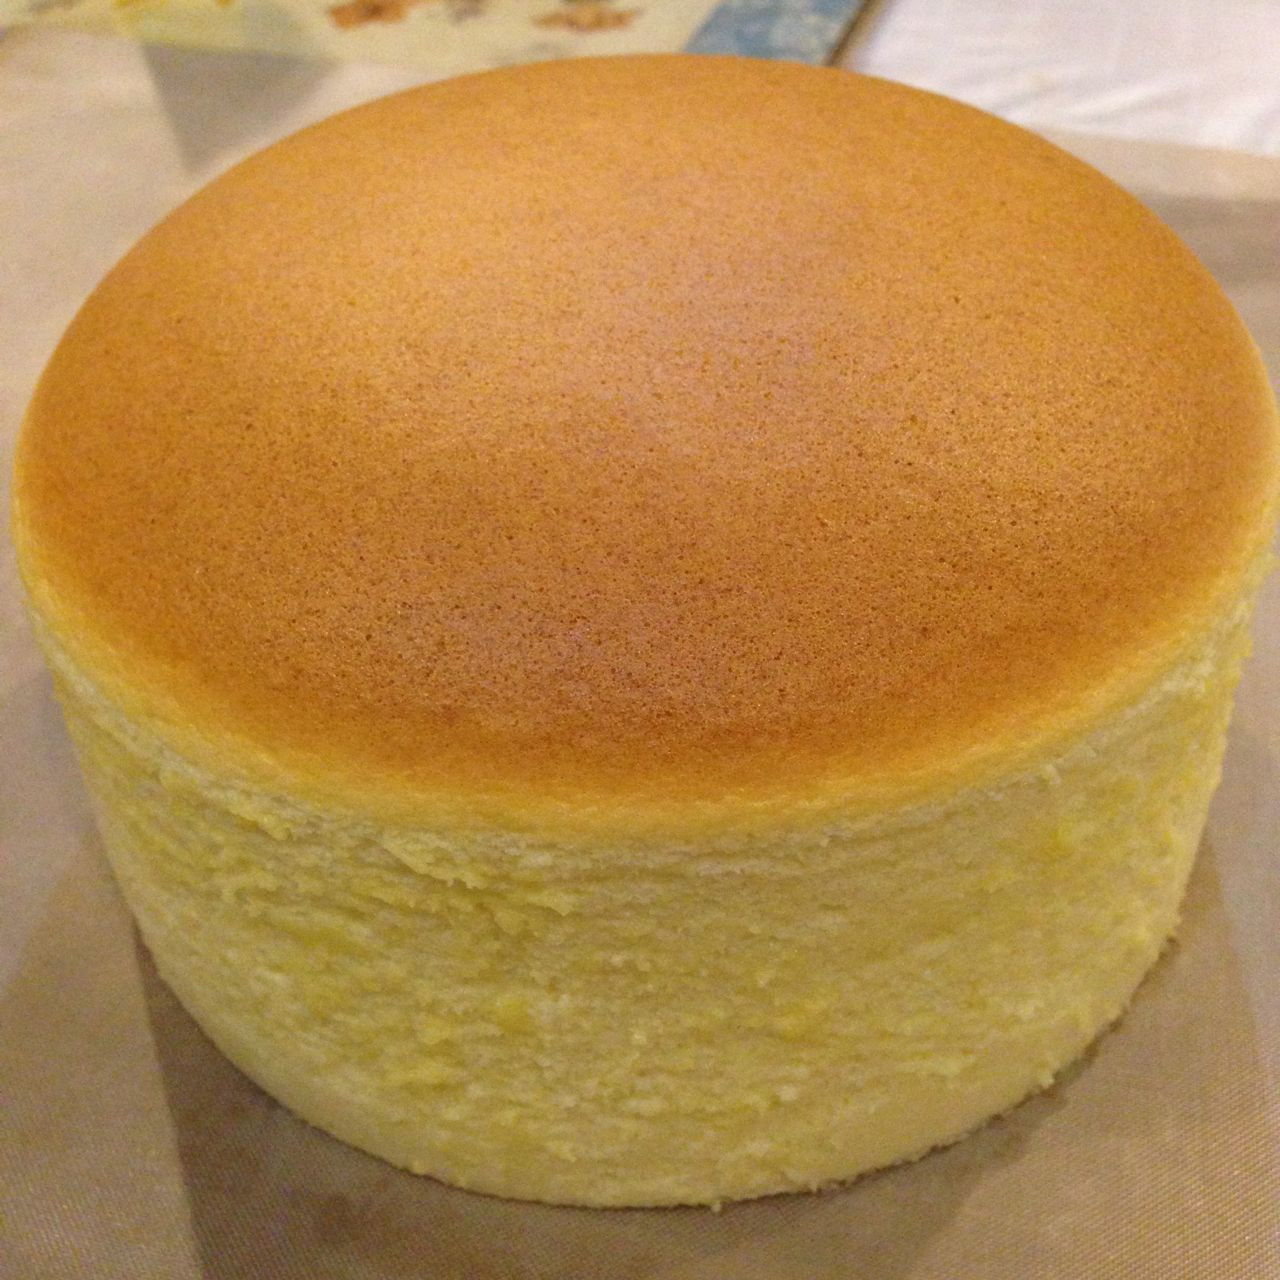 Awesome 6″ Japanese Cotton Cheesecake 3 Cakes Different Cotton Cake Of Wonderful 43 Photos Cotton Cake